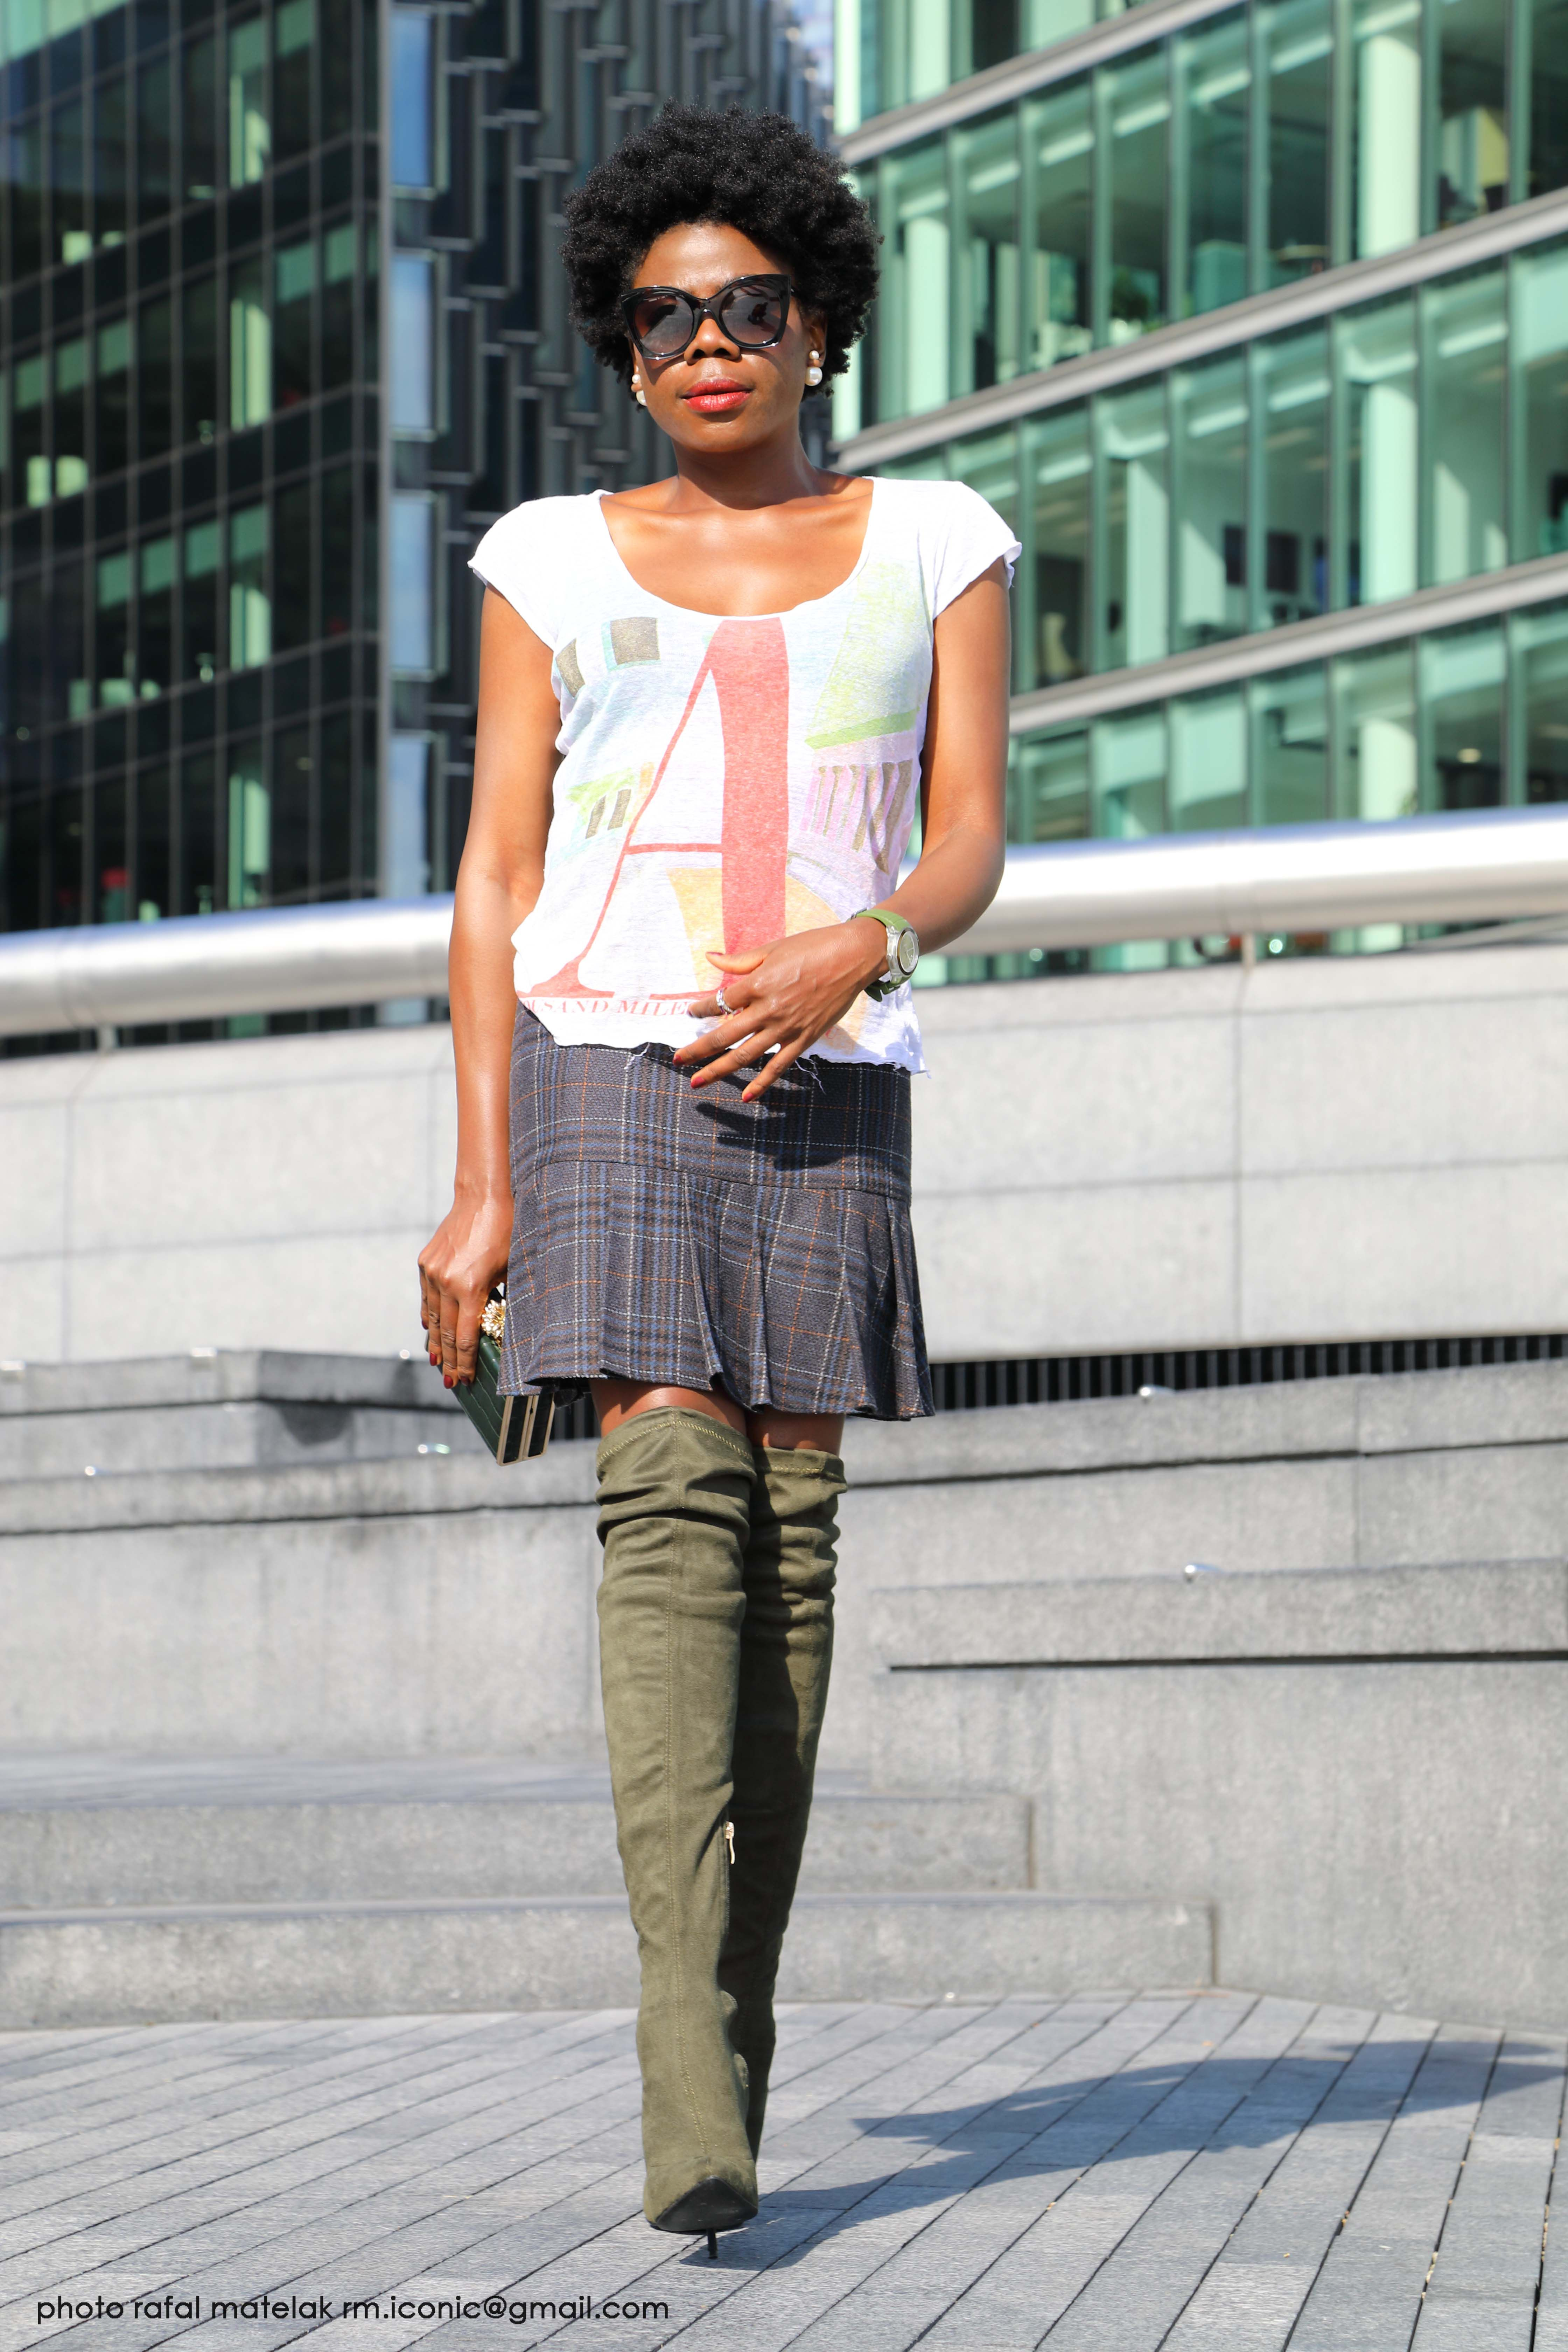 da1a1f21a1c5 Knee high boots-How to style them in the summer. Here is how - Mammypi